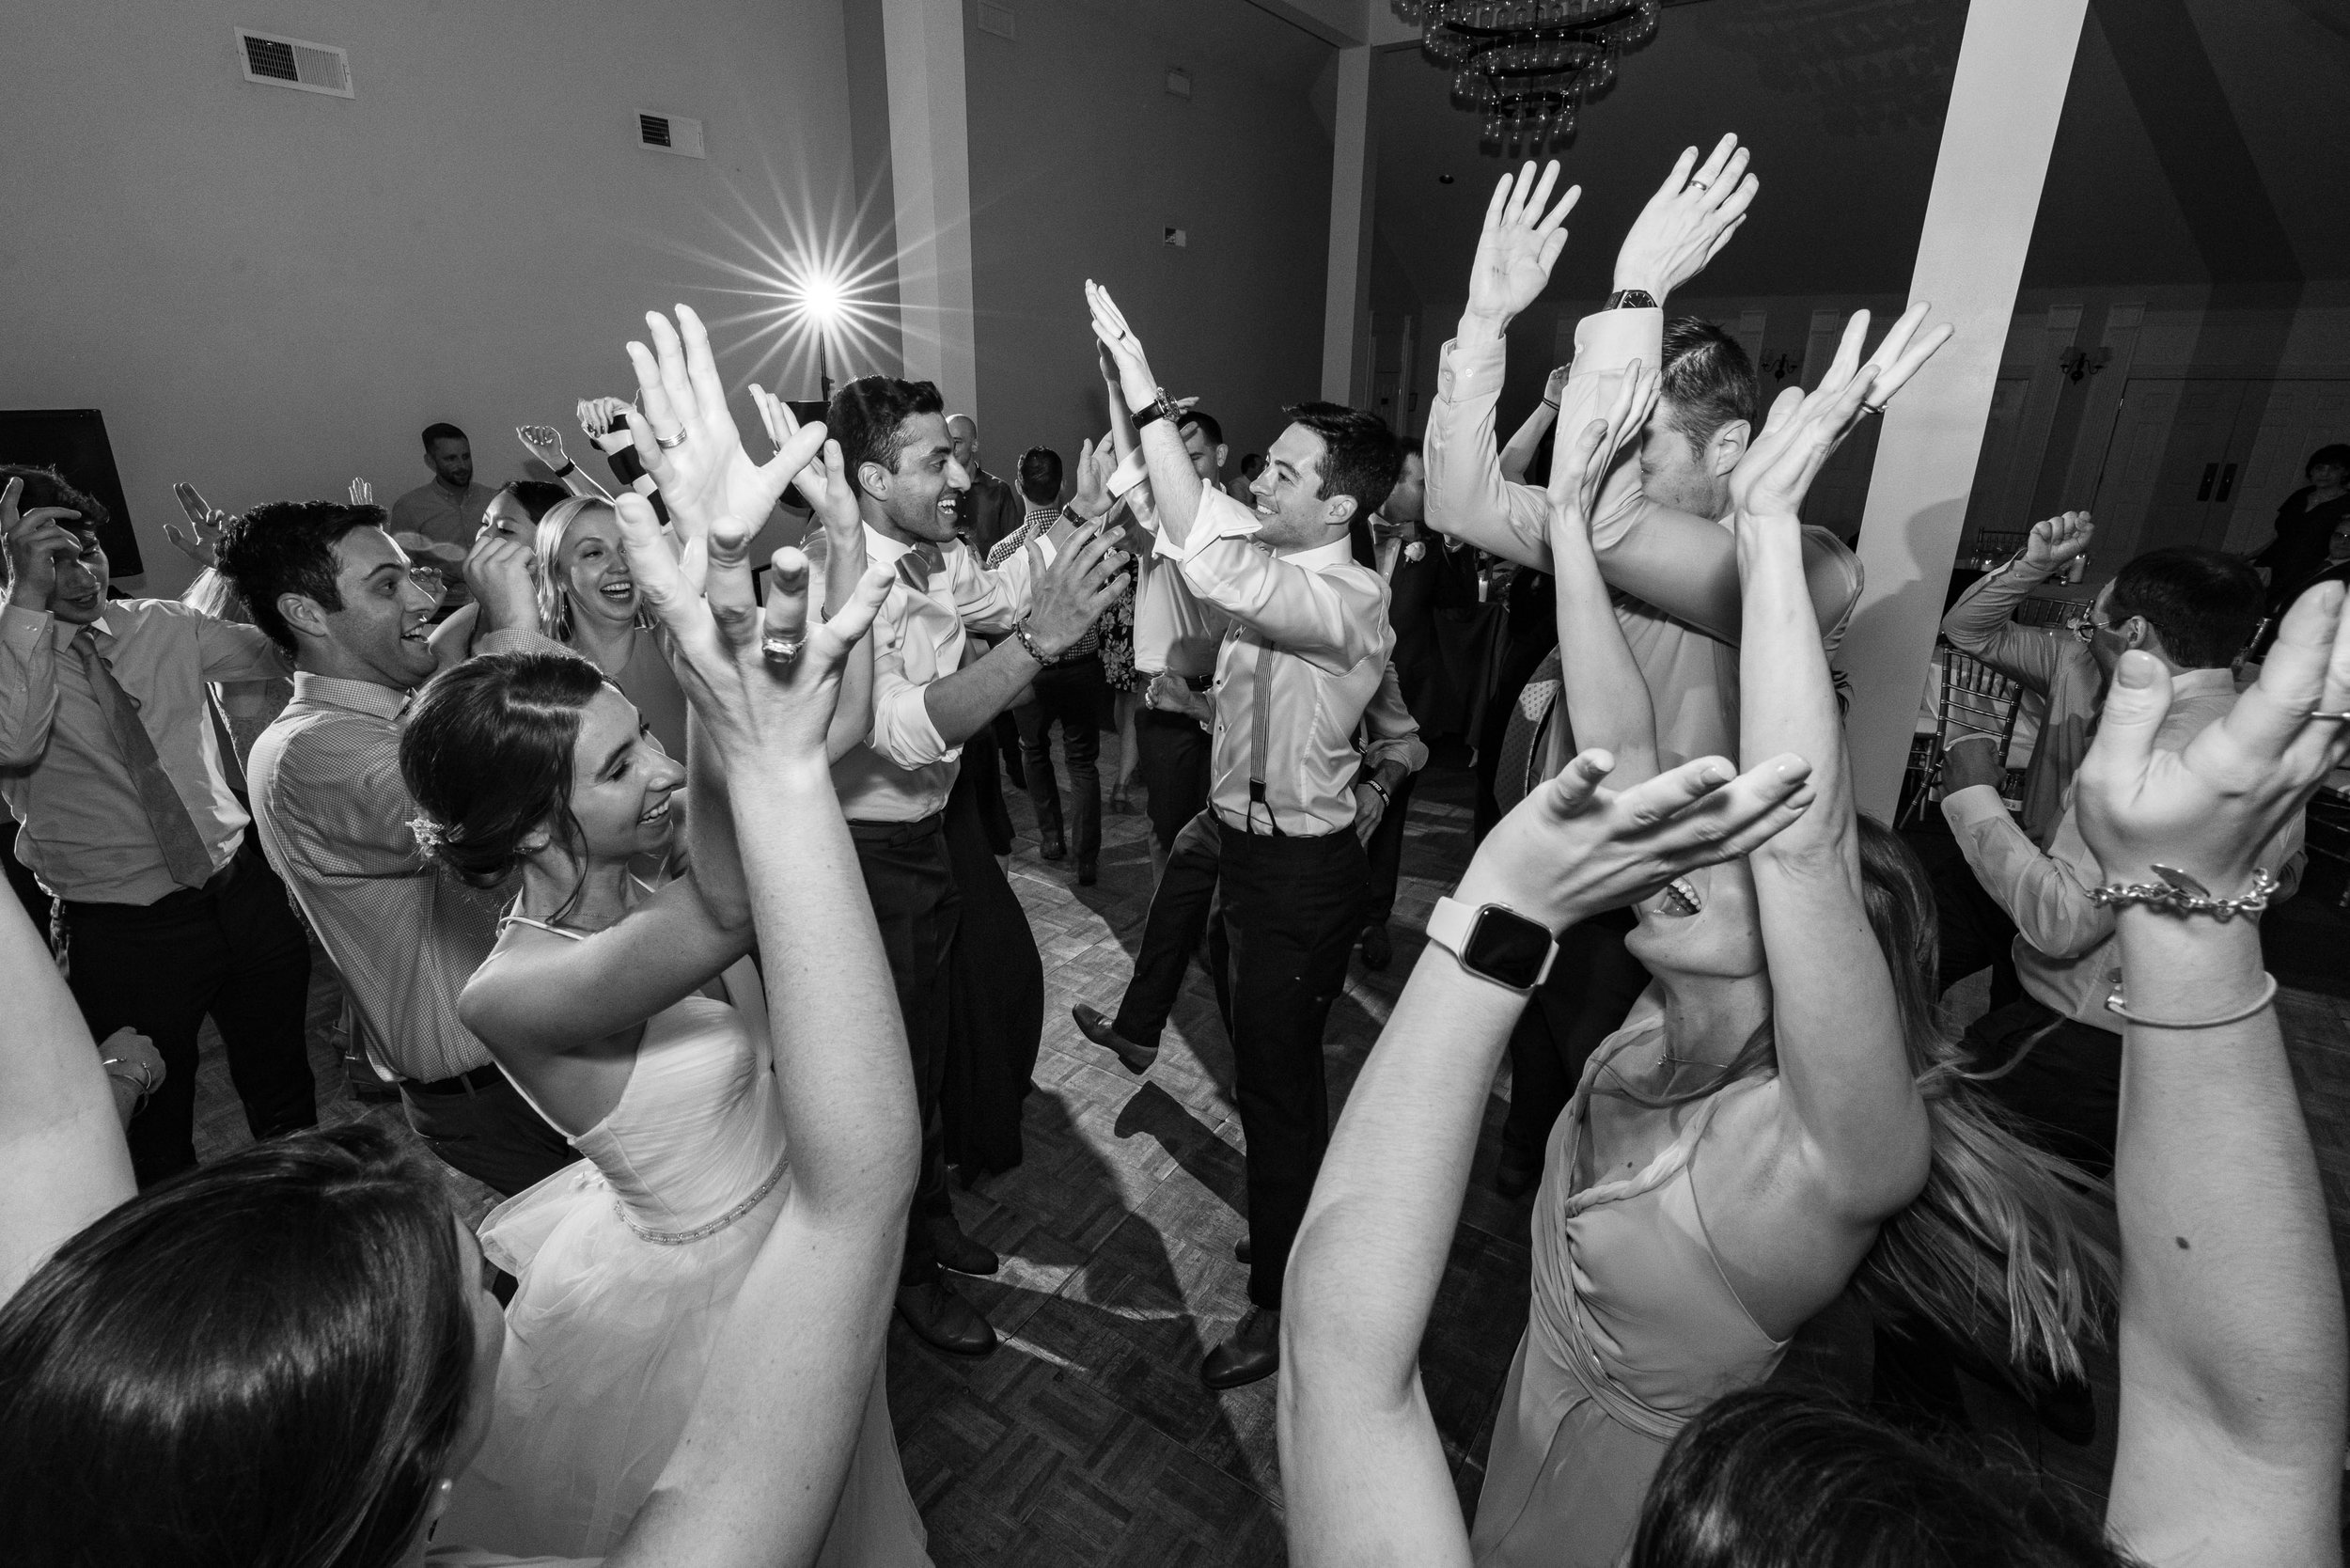 """Wedding guests with hands in the air during """"Shout!"""" song"""